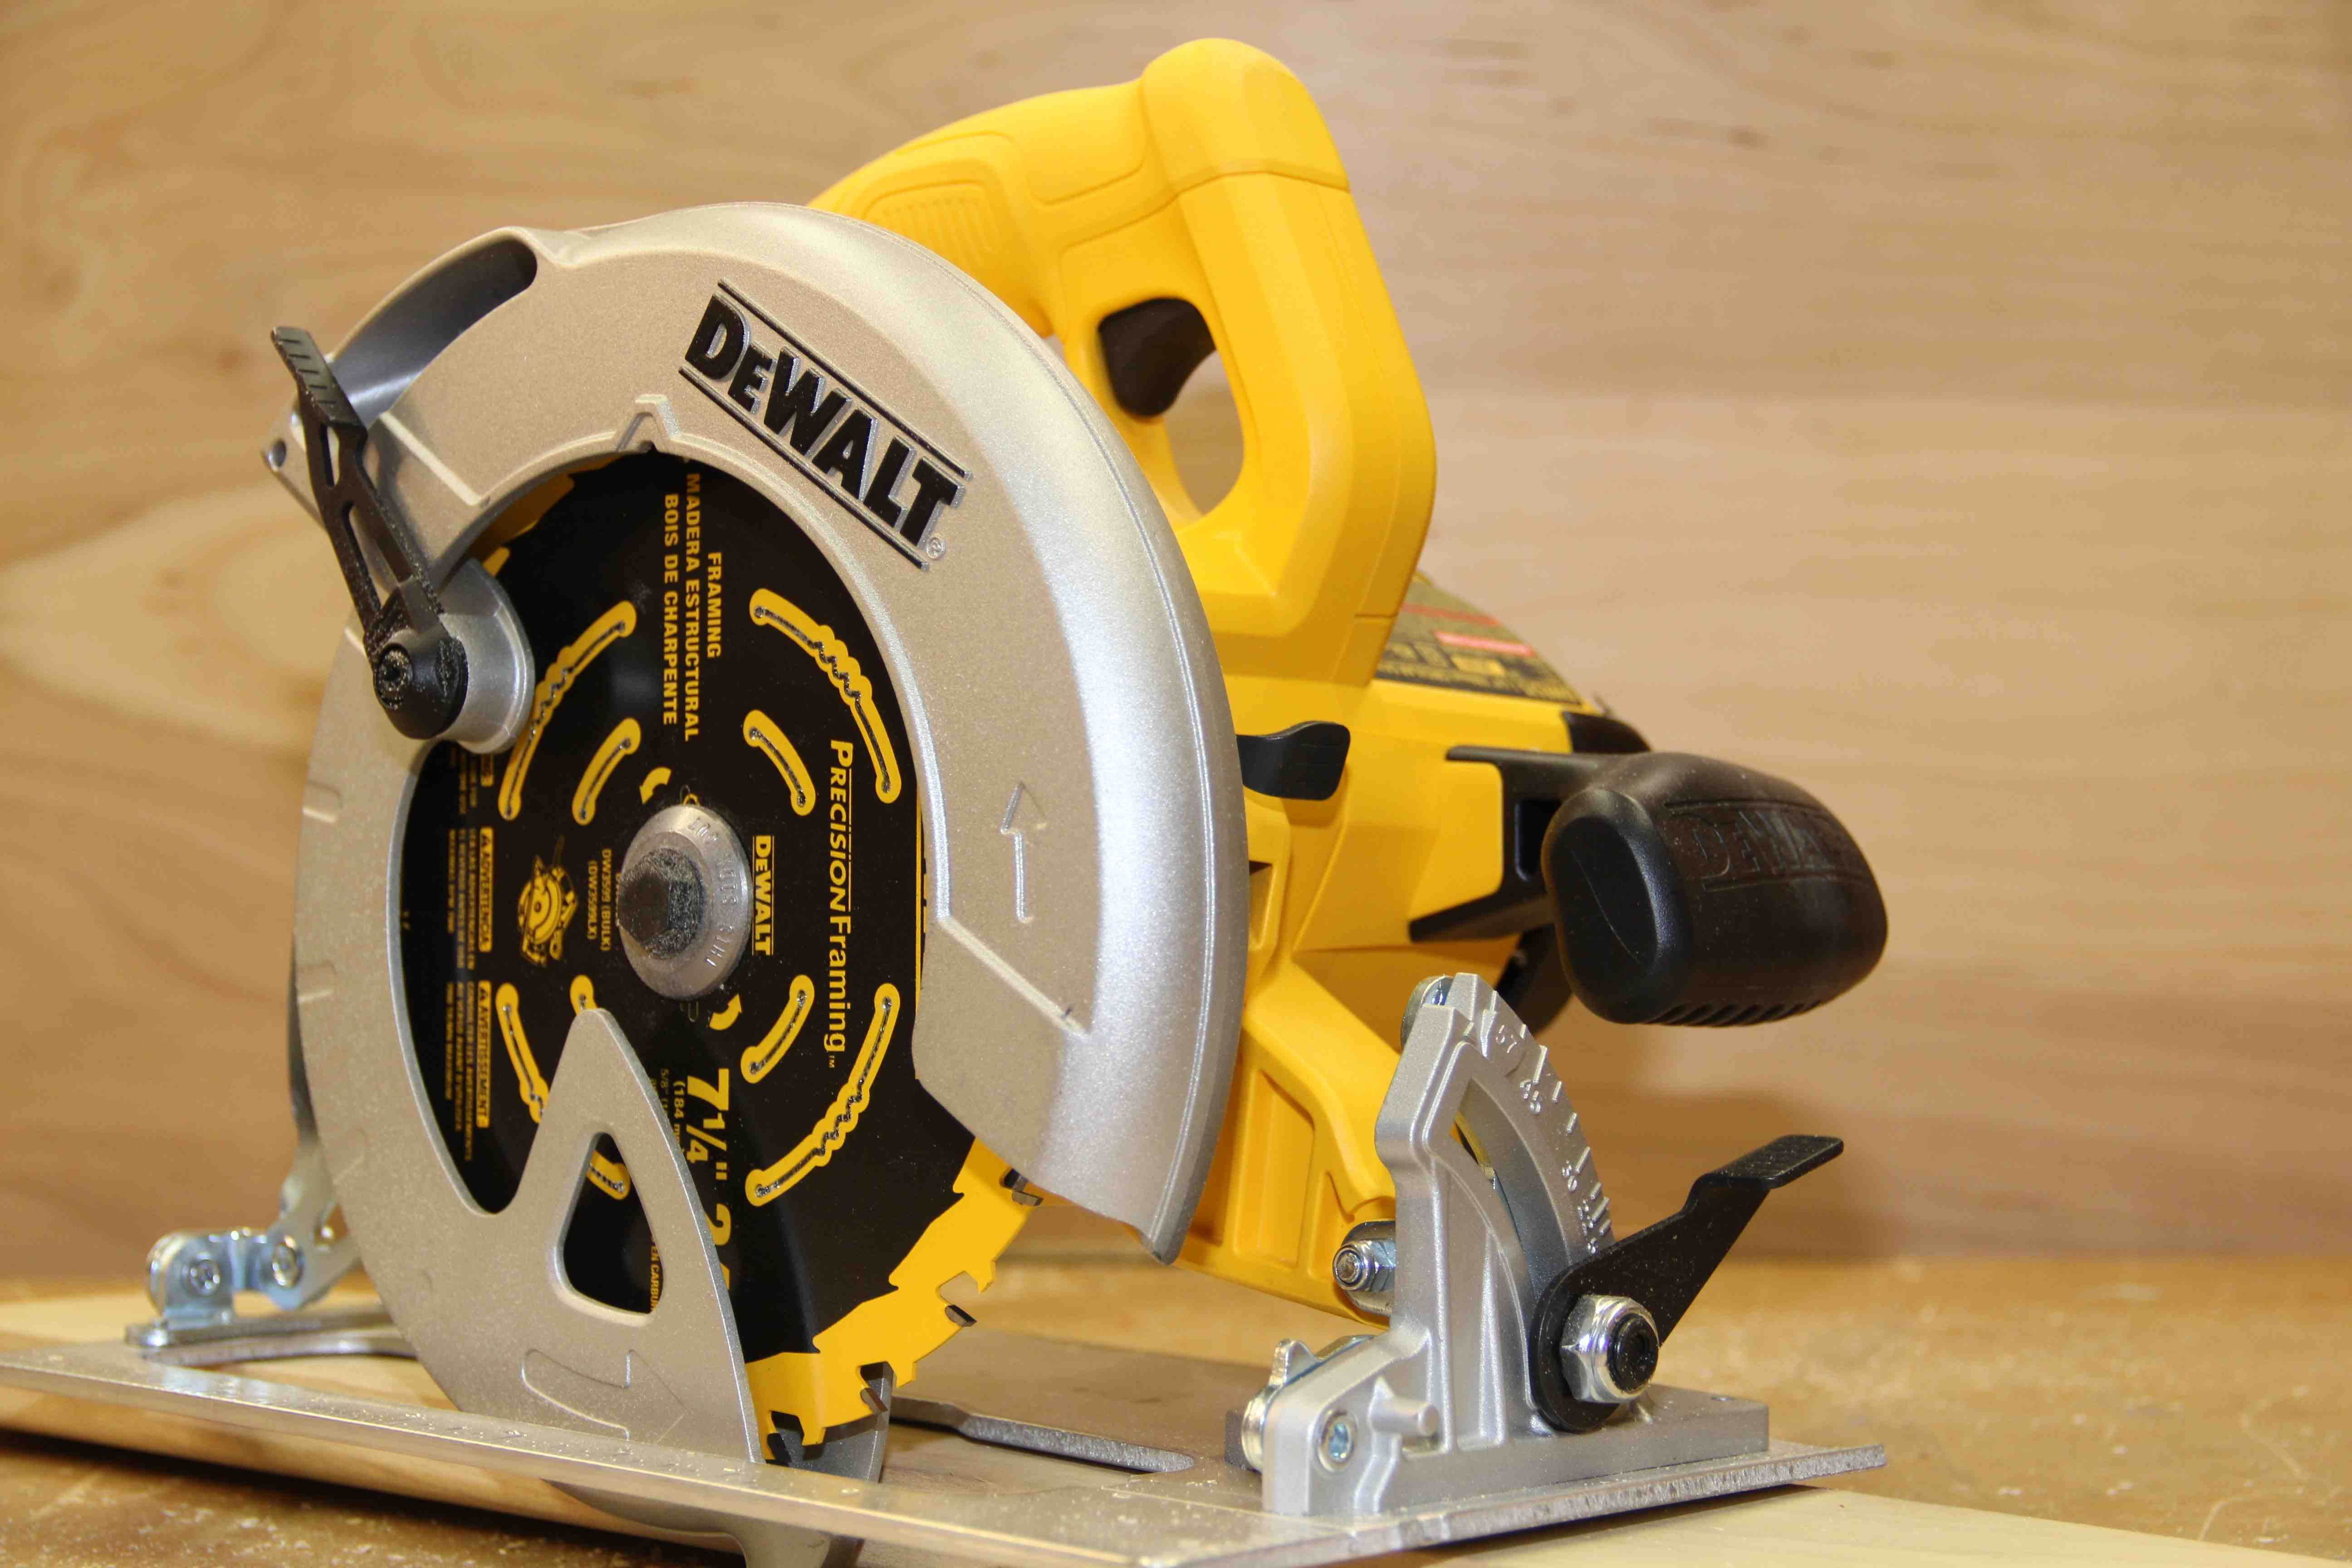 Dewalt lightweight circular saw dwe575 greentooth Choice Image